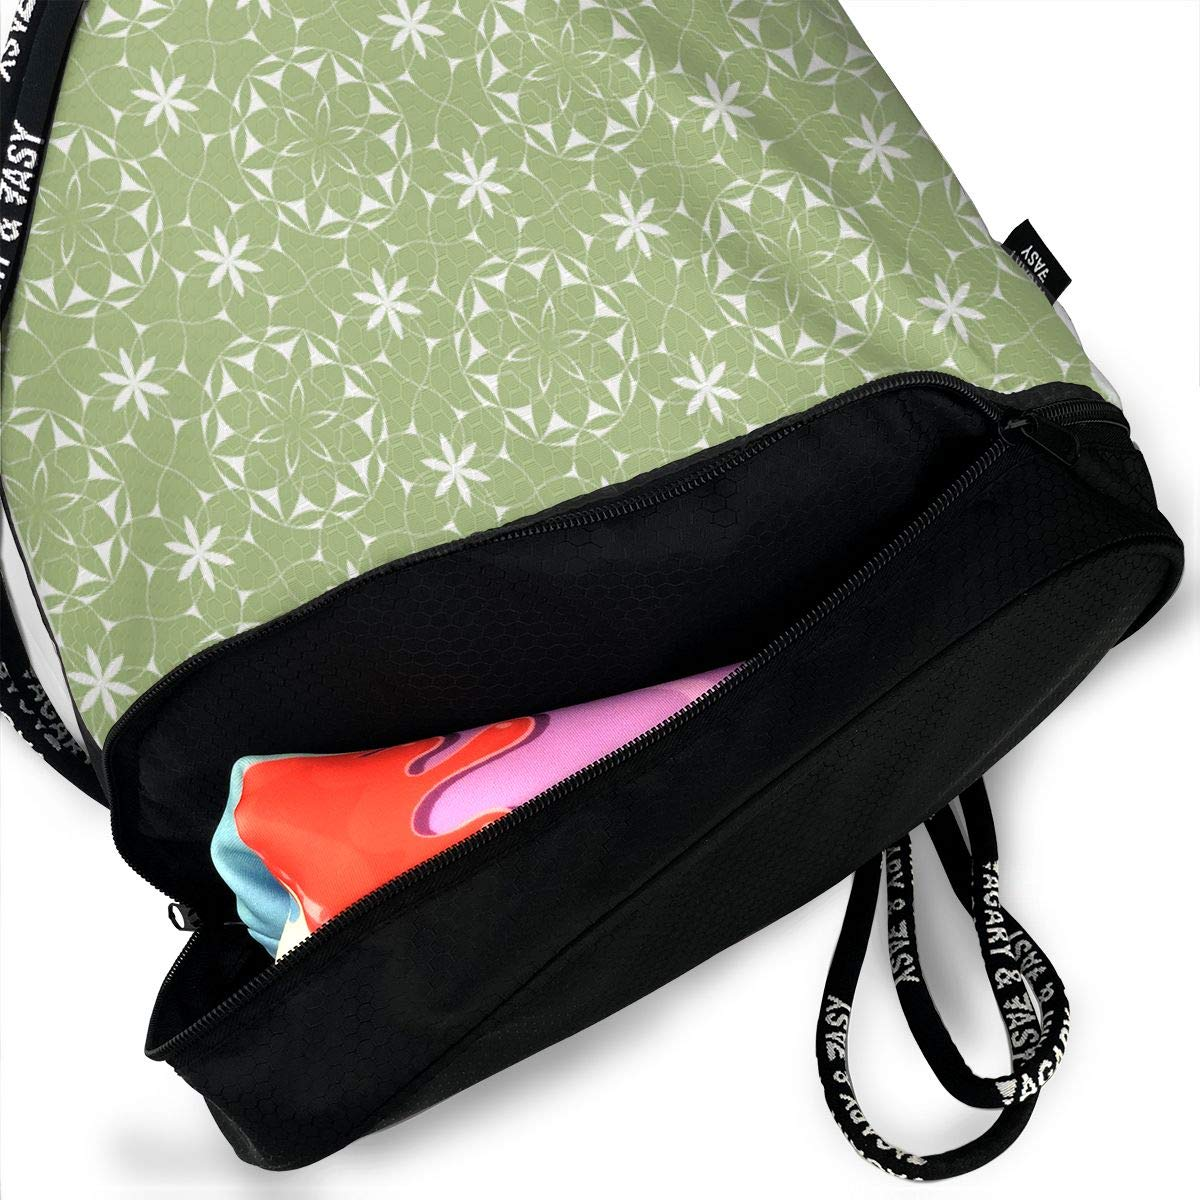 Lacey Web Flowers Green Drawstring Backpack Sports Athletic Gym Cinch Sack String Storage Bags for Hiking Travel Beach